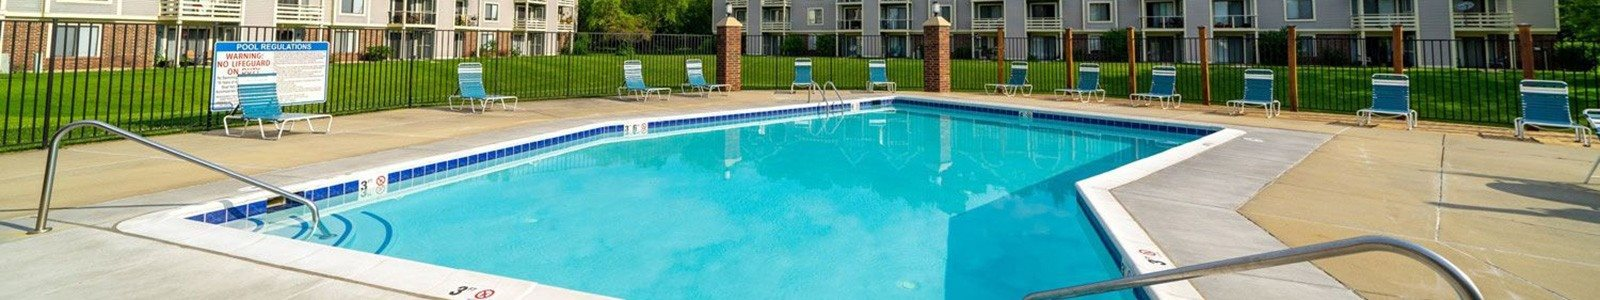 Glimmering Pool at Hurwich Farms Apartments, South Bend, IN, 46628